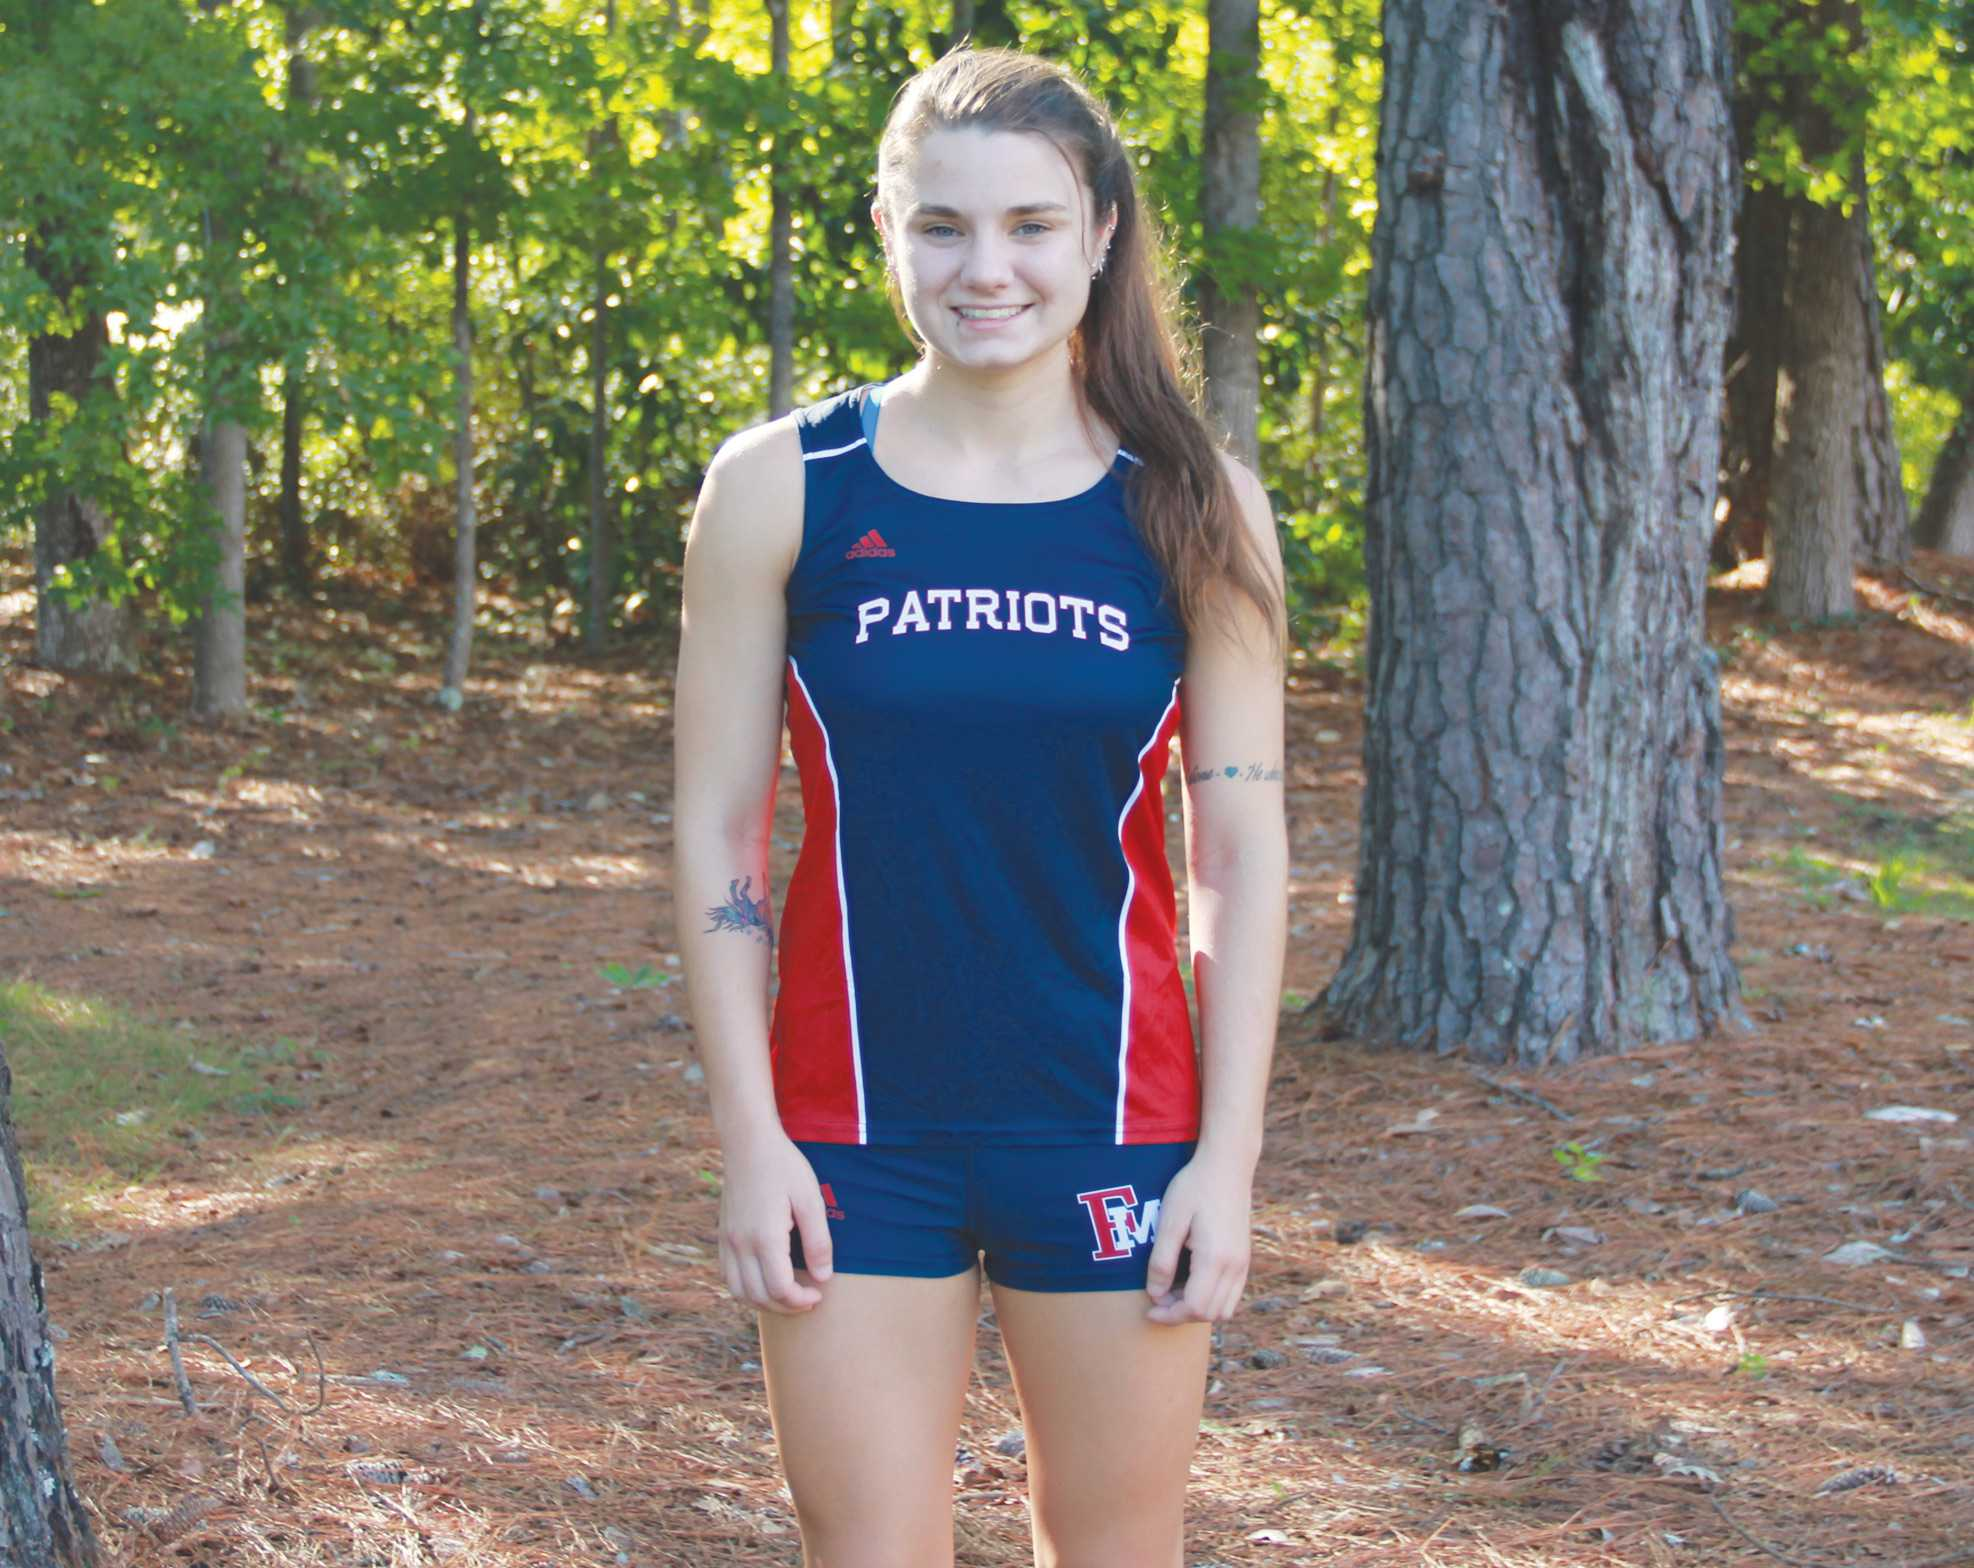 Junior Mackenzie Arnold runs cross-country and takes advantage of the opportunities FMU offers, including studying abroad.